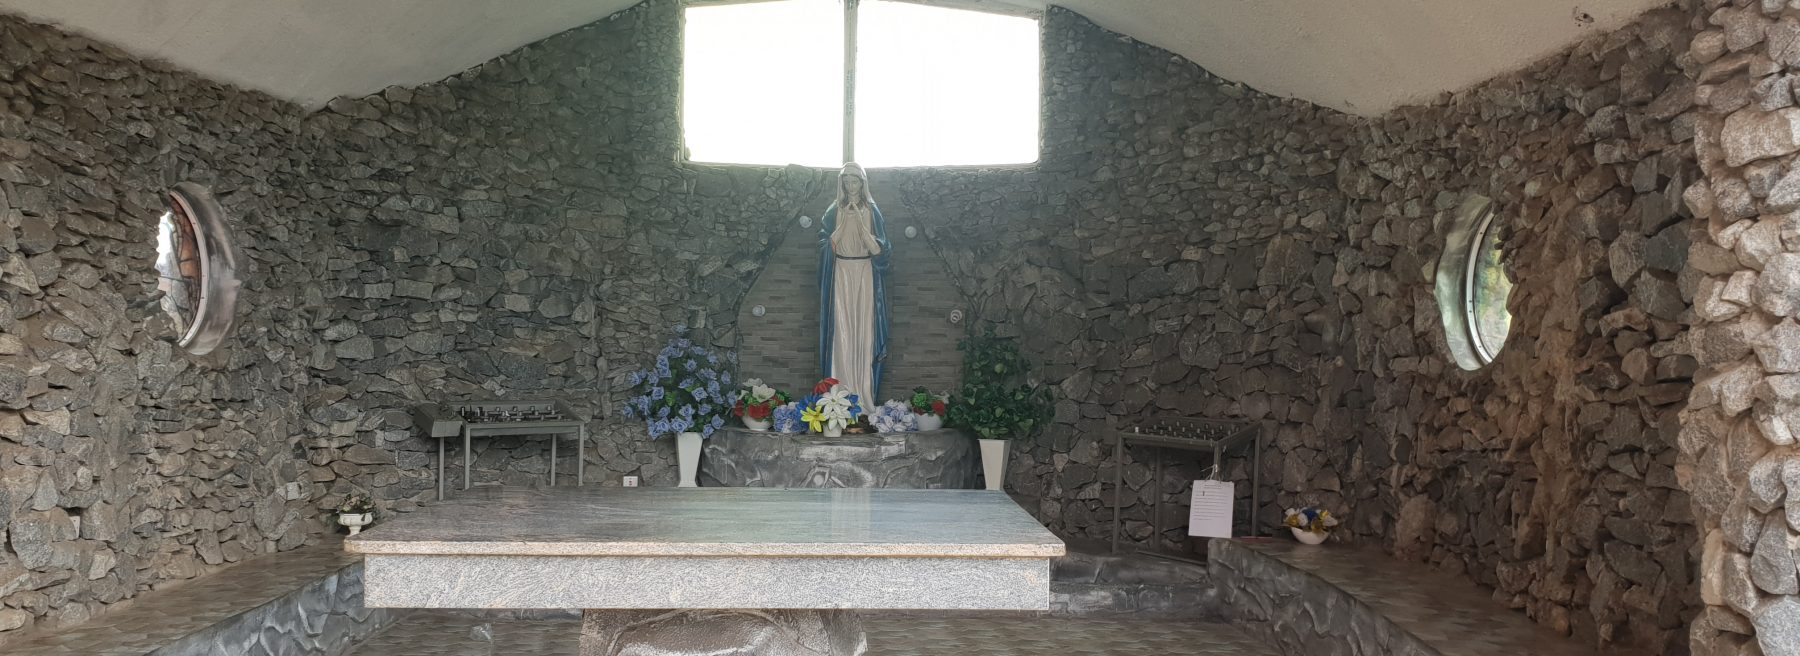 St Theresa Church grotto close view